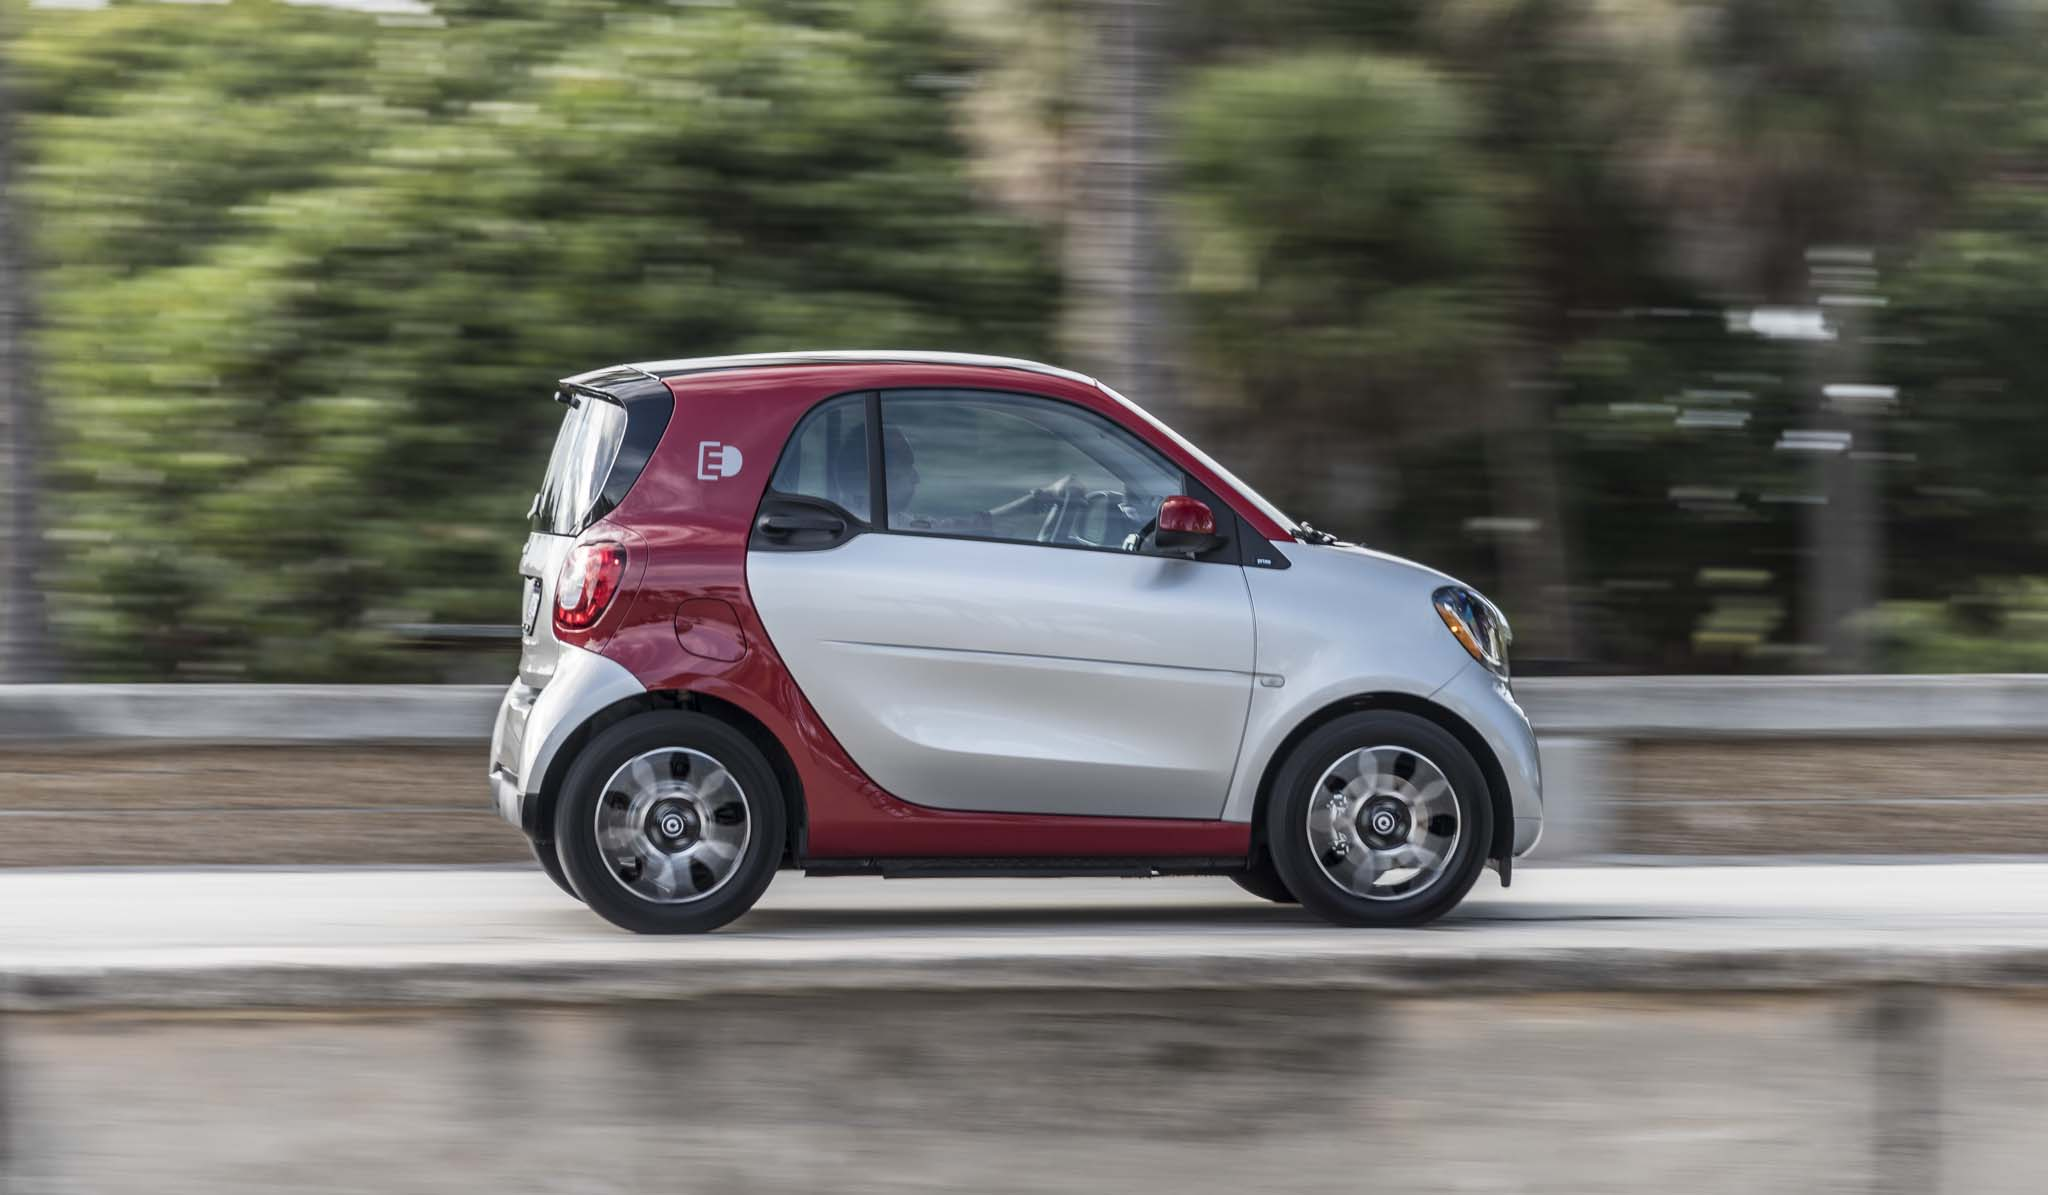 Smart Ditches Gas Powered Models In Favor Of Evs In The U